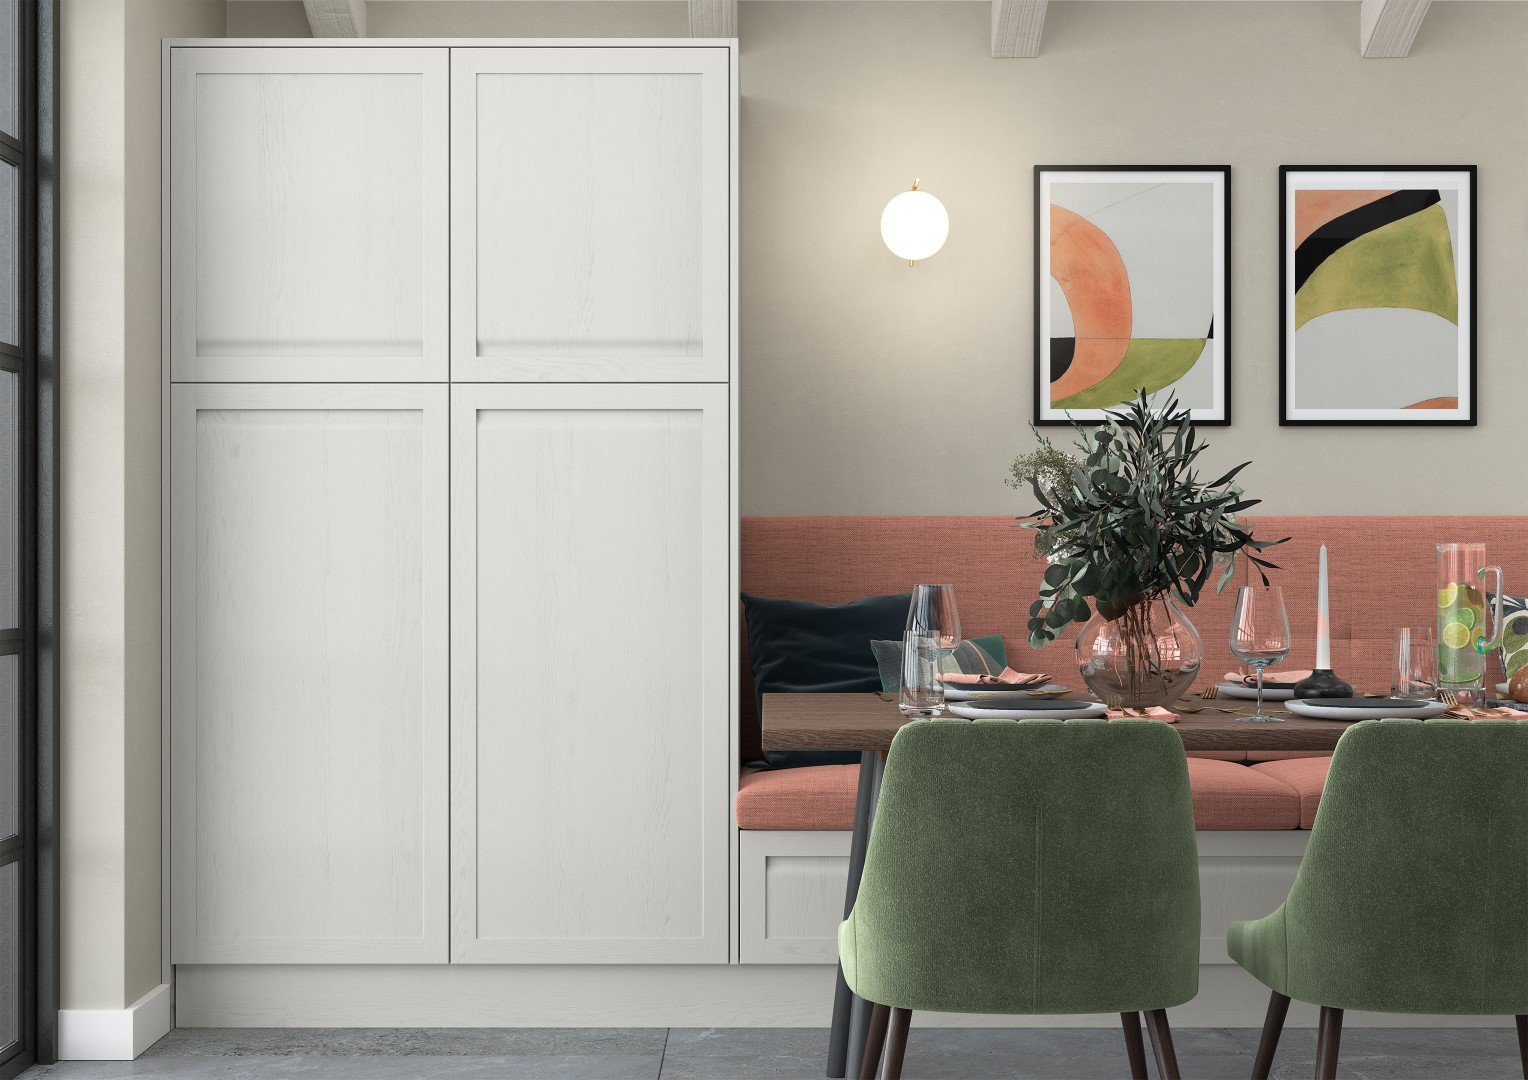 Harborne Slate Blue, Stone and Citrus Green - Kitchen Design - Alan Kelly Kitchens - Waterford - 3